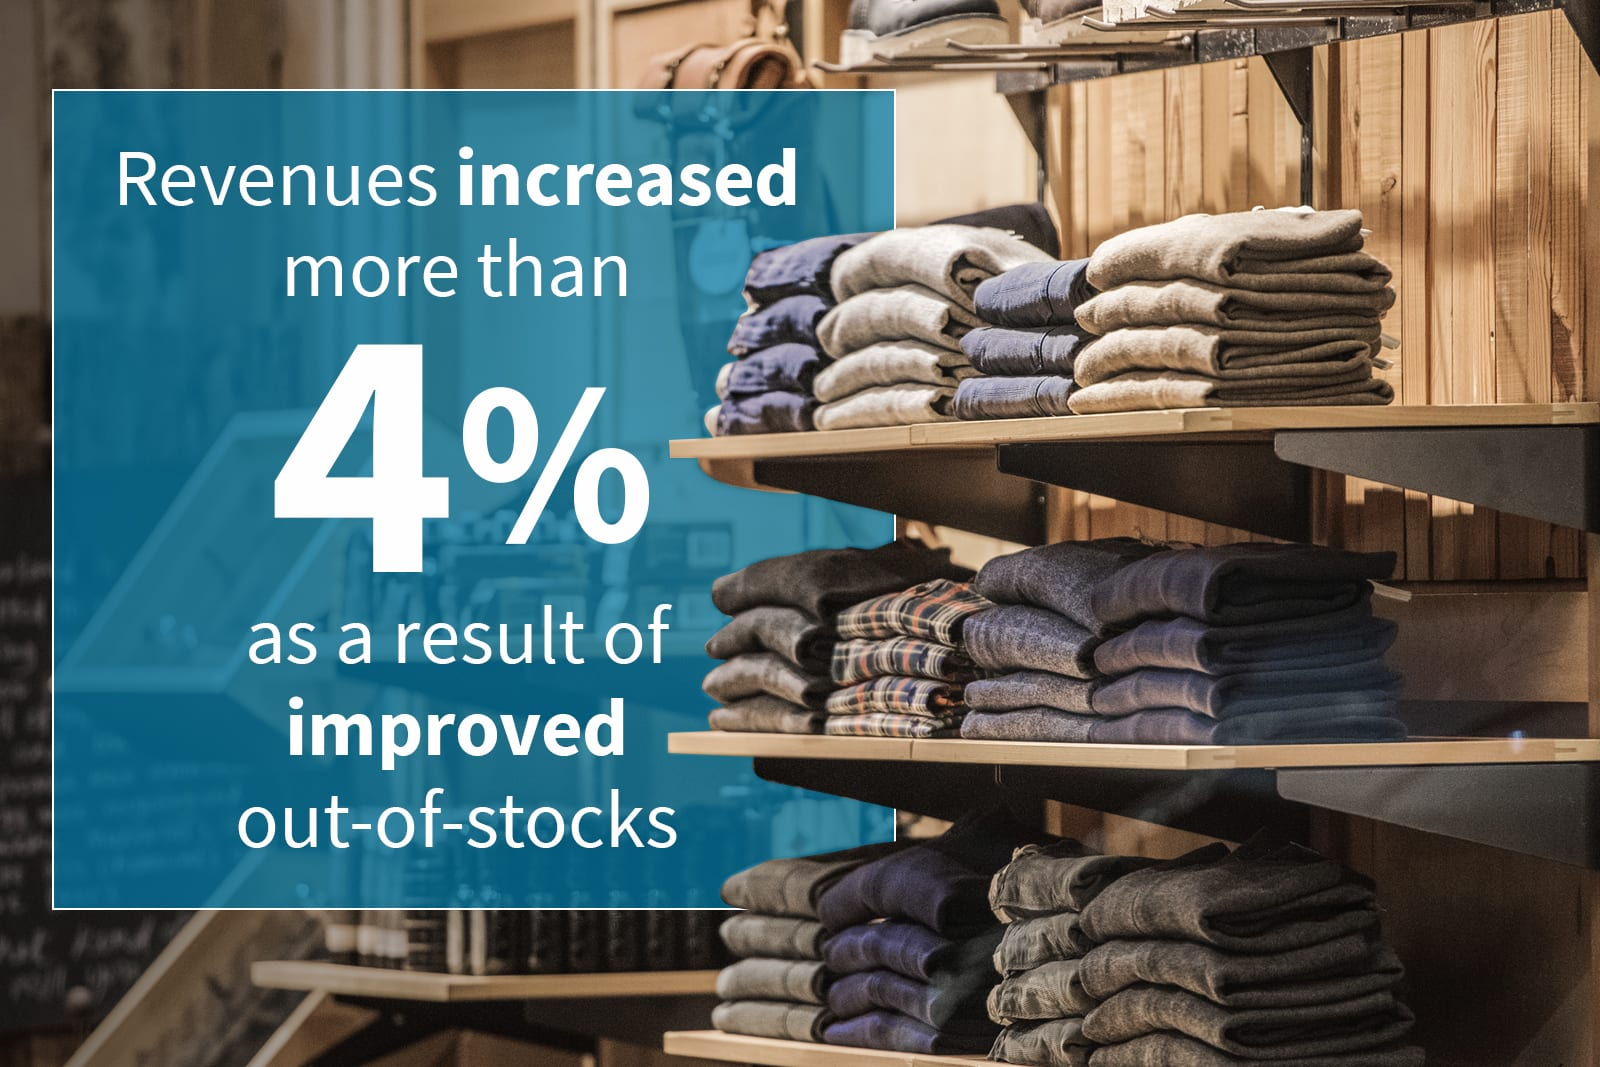 Revenues increased more than 4% as a result of improved out-of-stocks